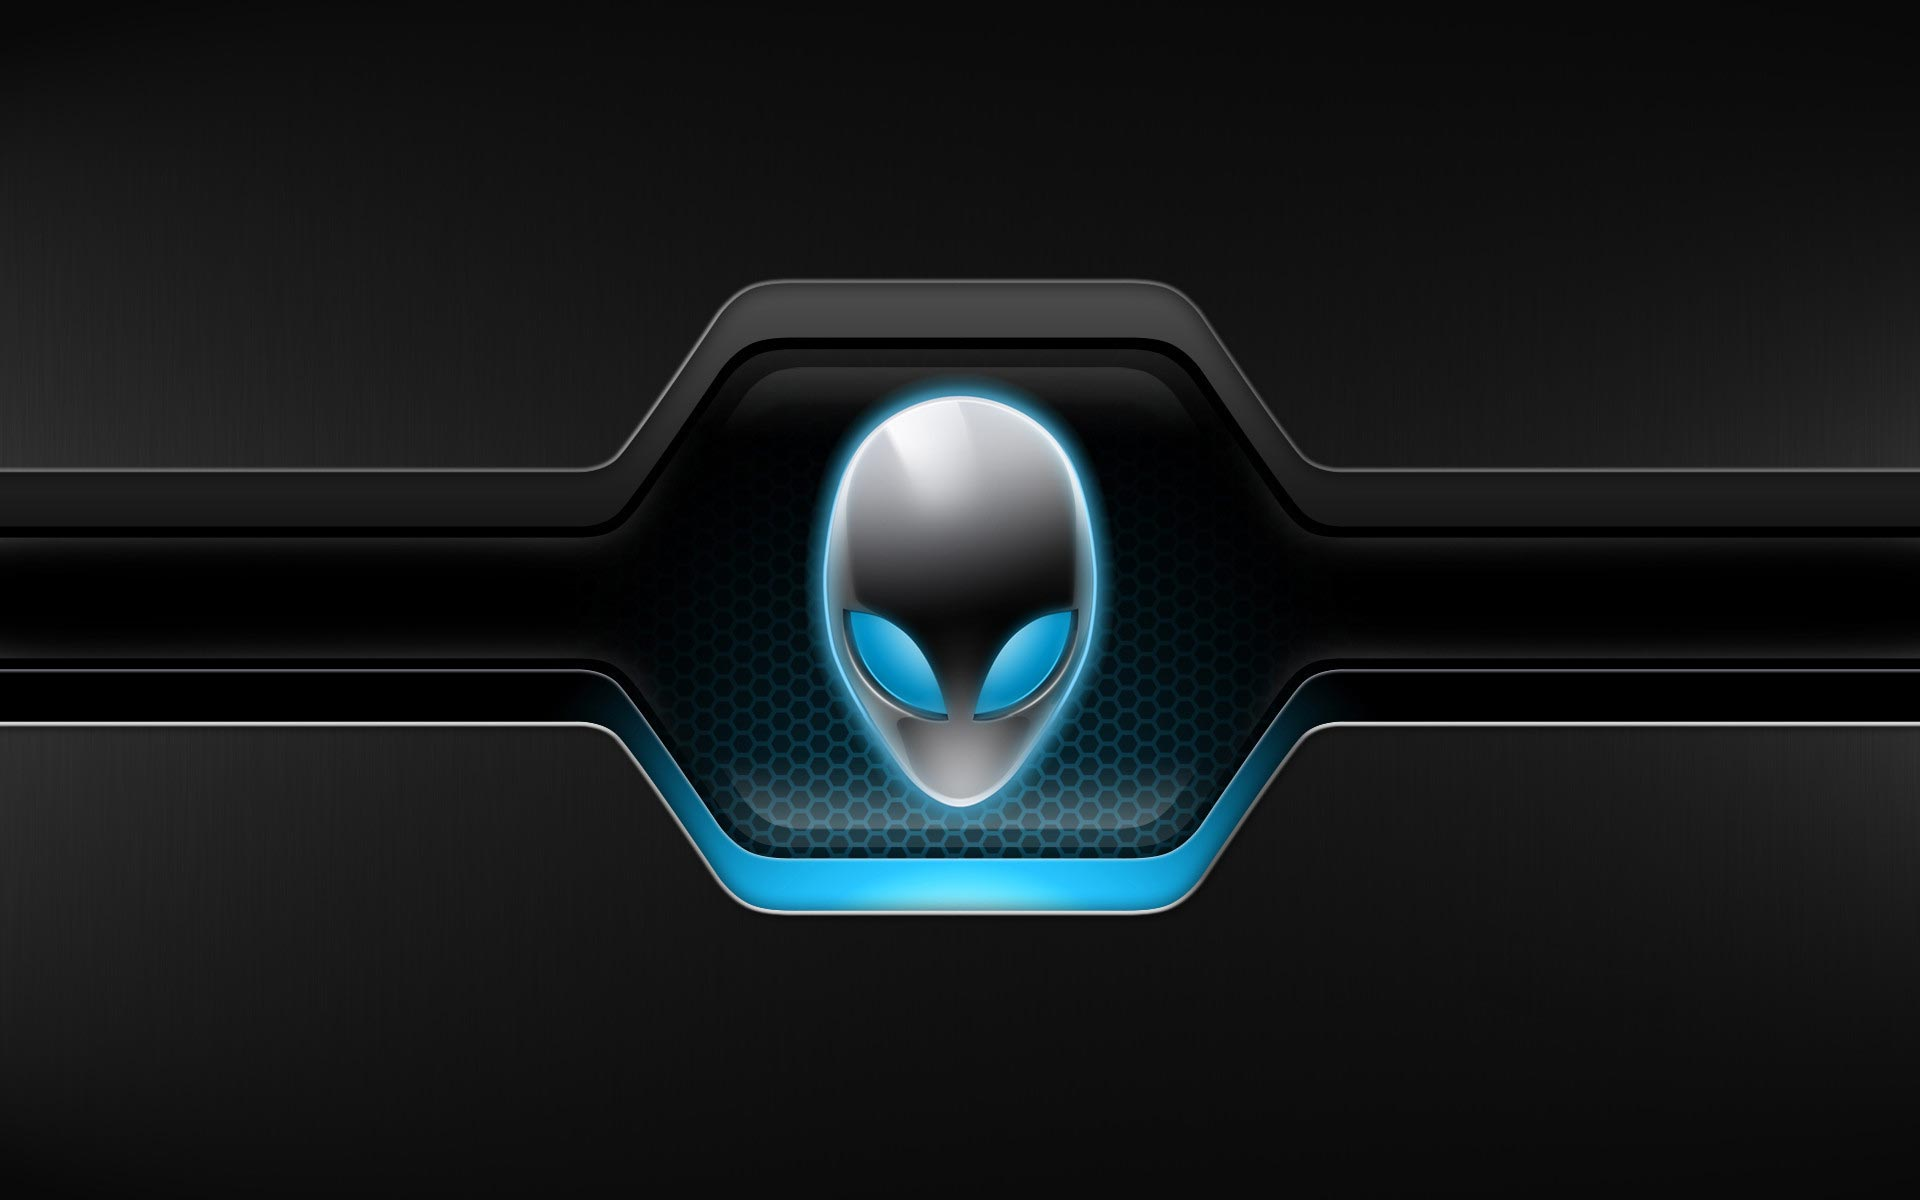 Alienware Wallpaper 1920X1080 HD 1920x1200